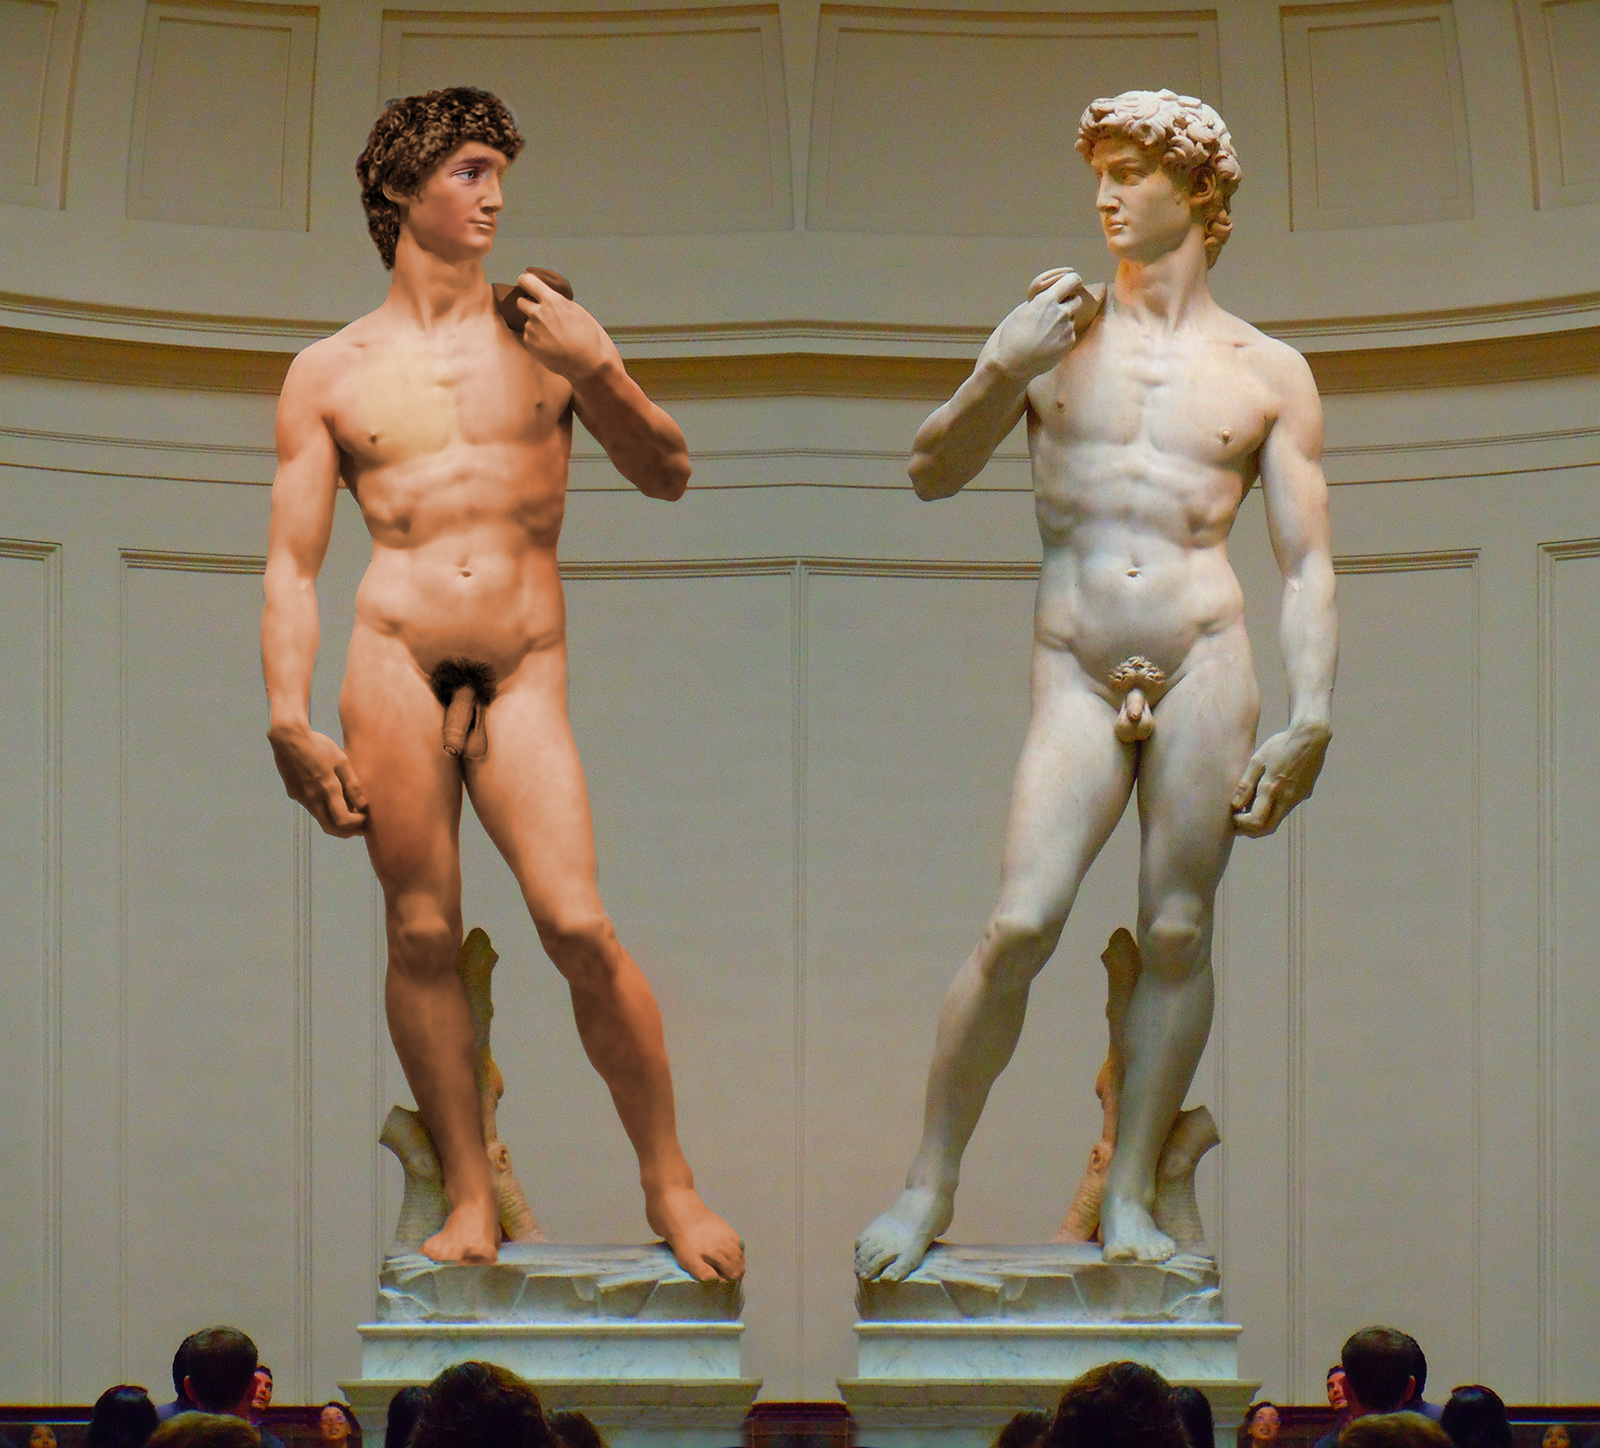 Art Gallery of Masculine Beauty & Homo Eroticism